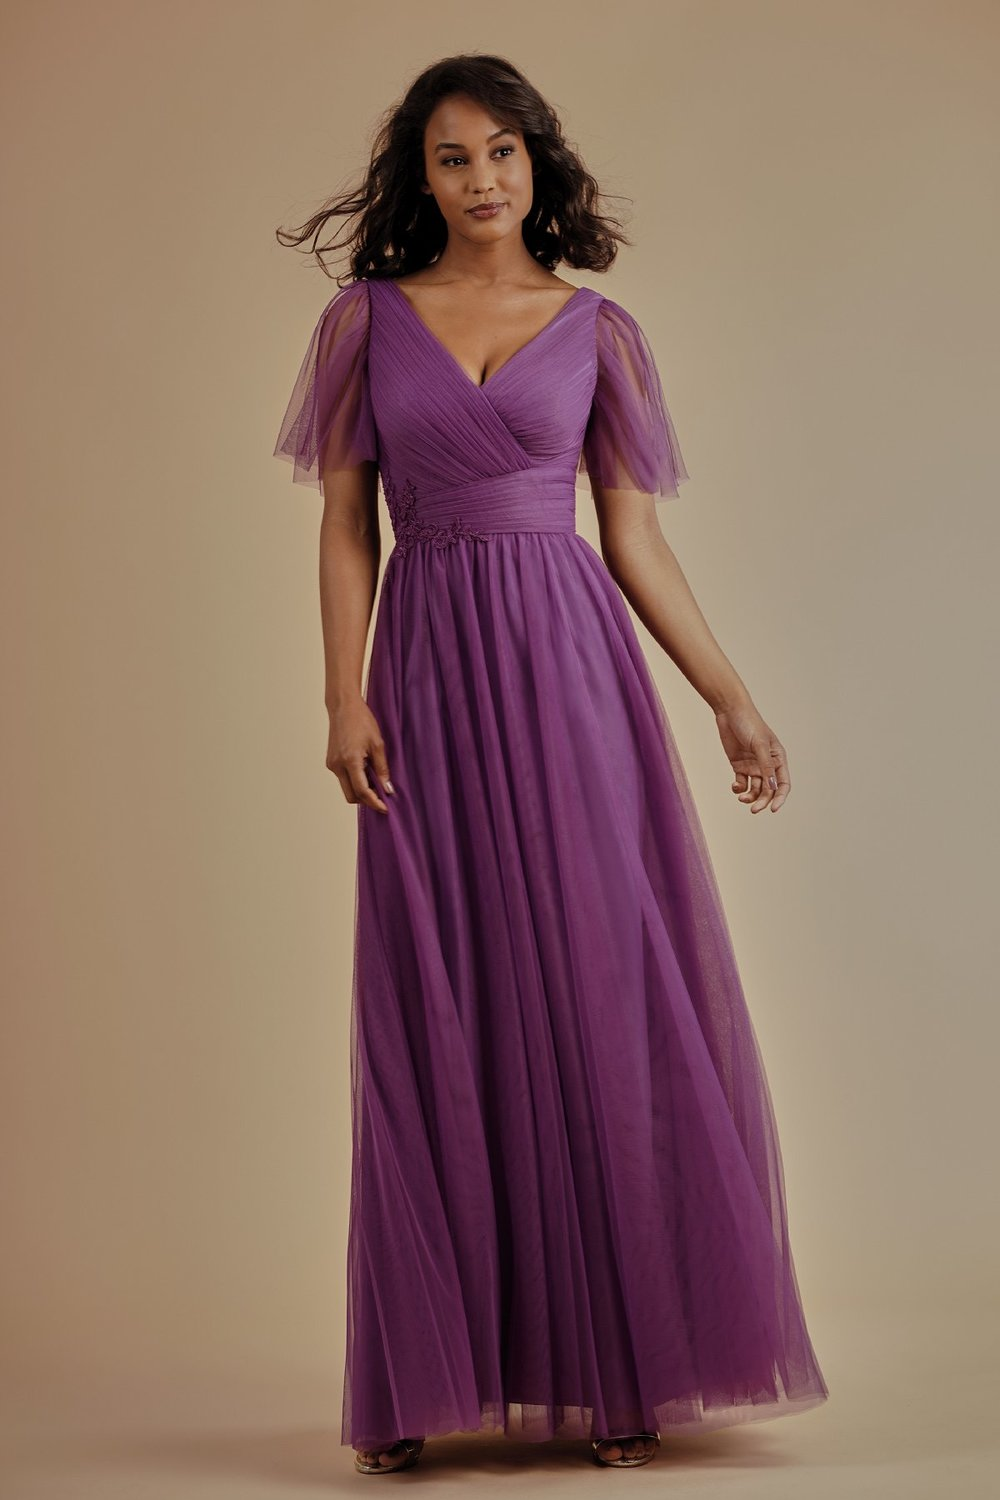 L214009 -  Pretty soft tulle floor length bridesmaid dress with a flattering V-neckline and V back. Beautiful lace detail on the bodice, gathered soft tulle short sleeves, and detailed gathers throughout the dress.    Available in 17 colors